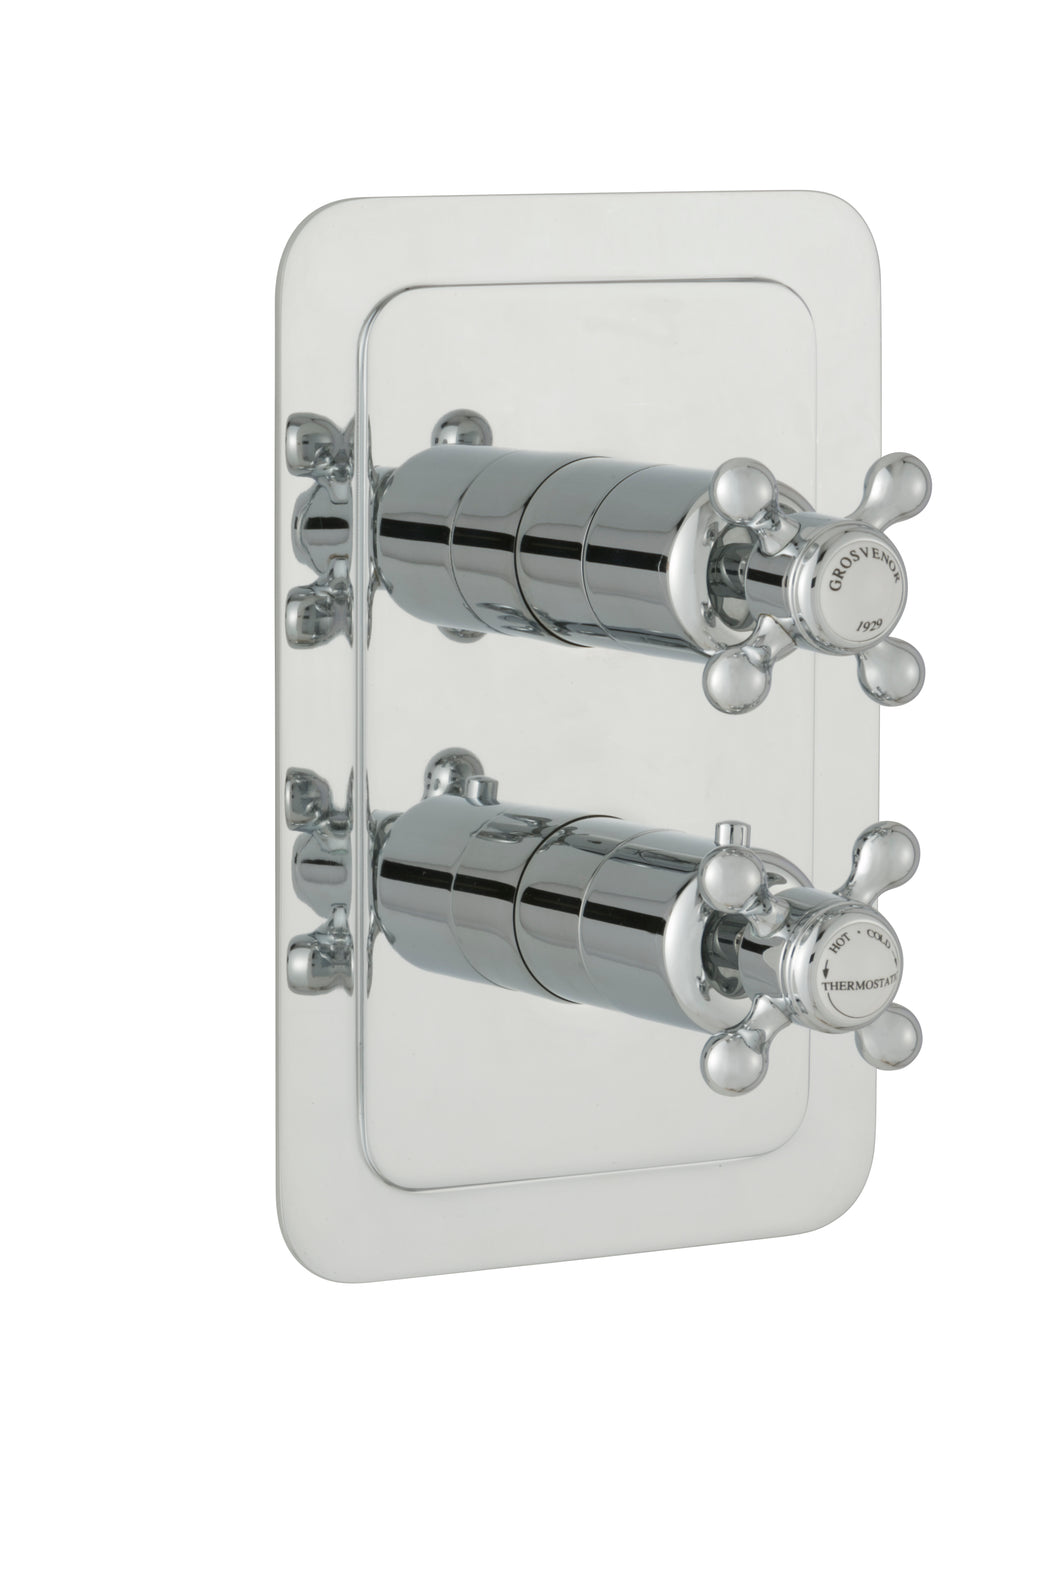 Chester Crosshead Single Outlet Concealed Thermostatic Vertical Shower Valve - Nickel